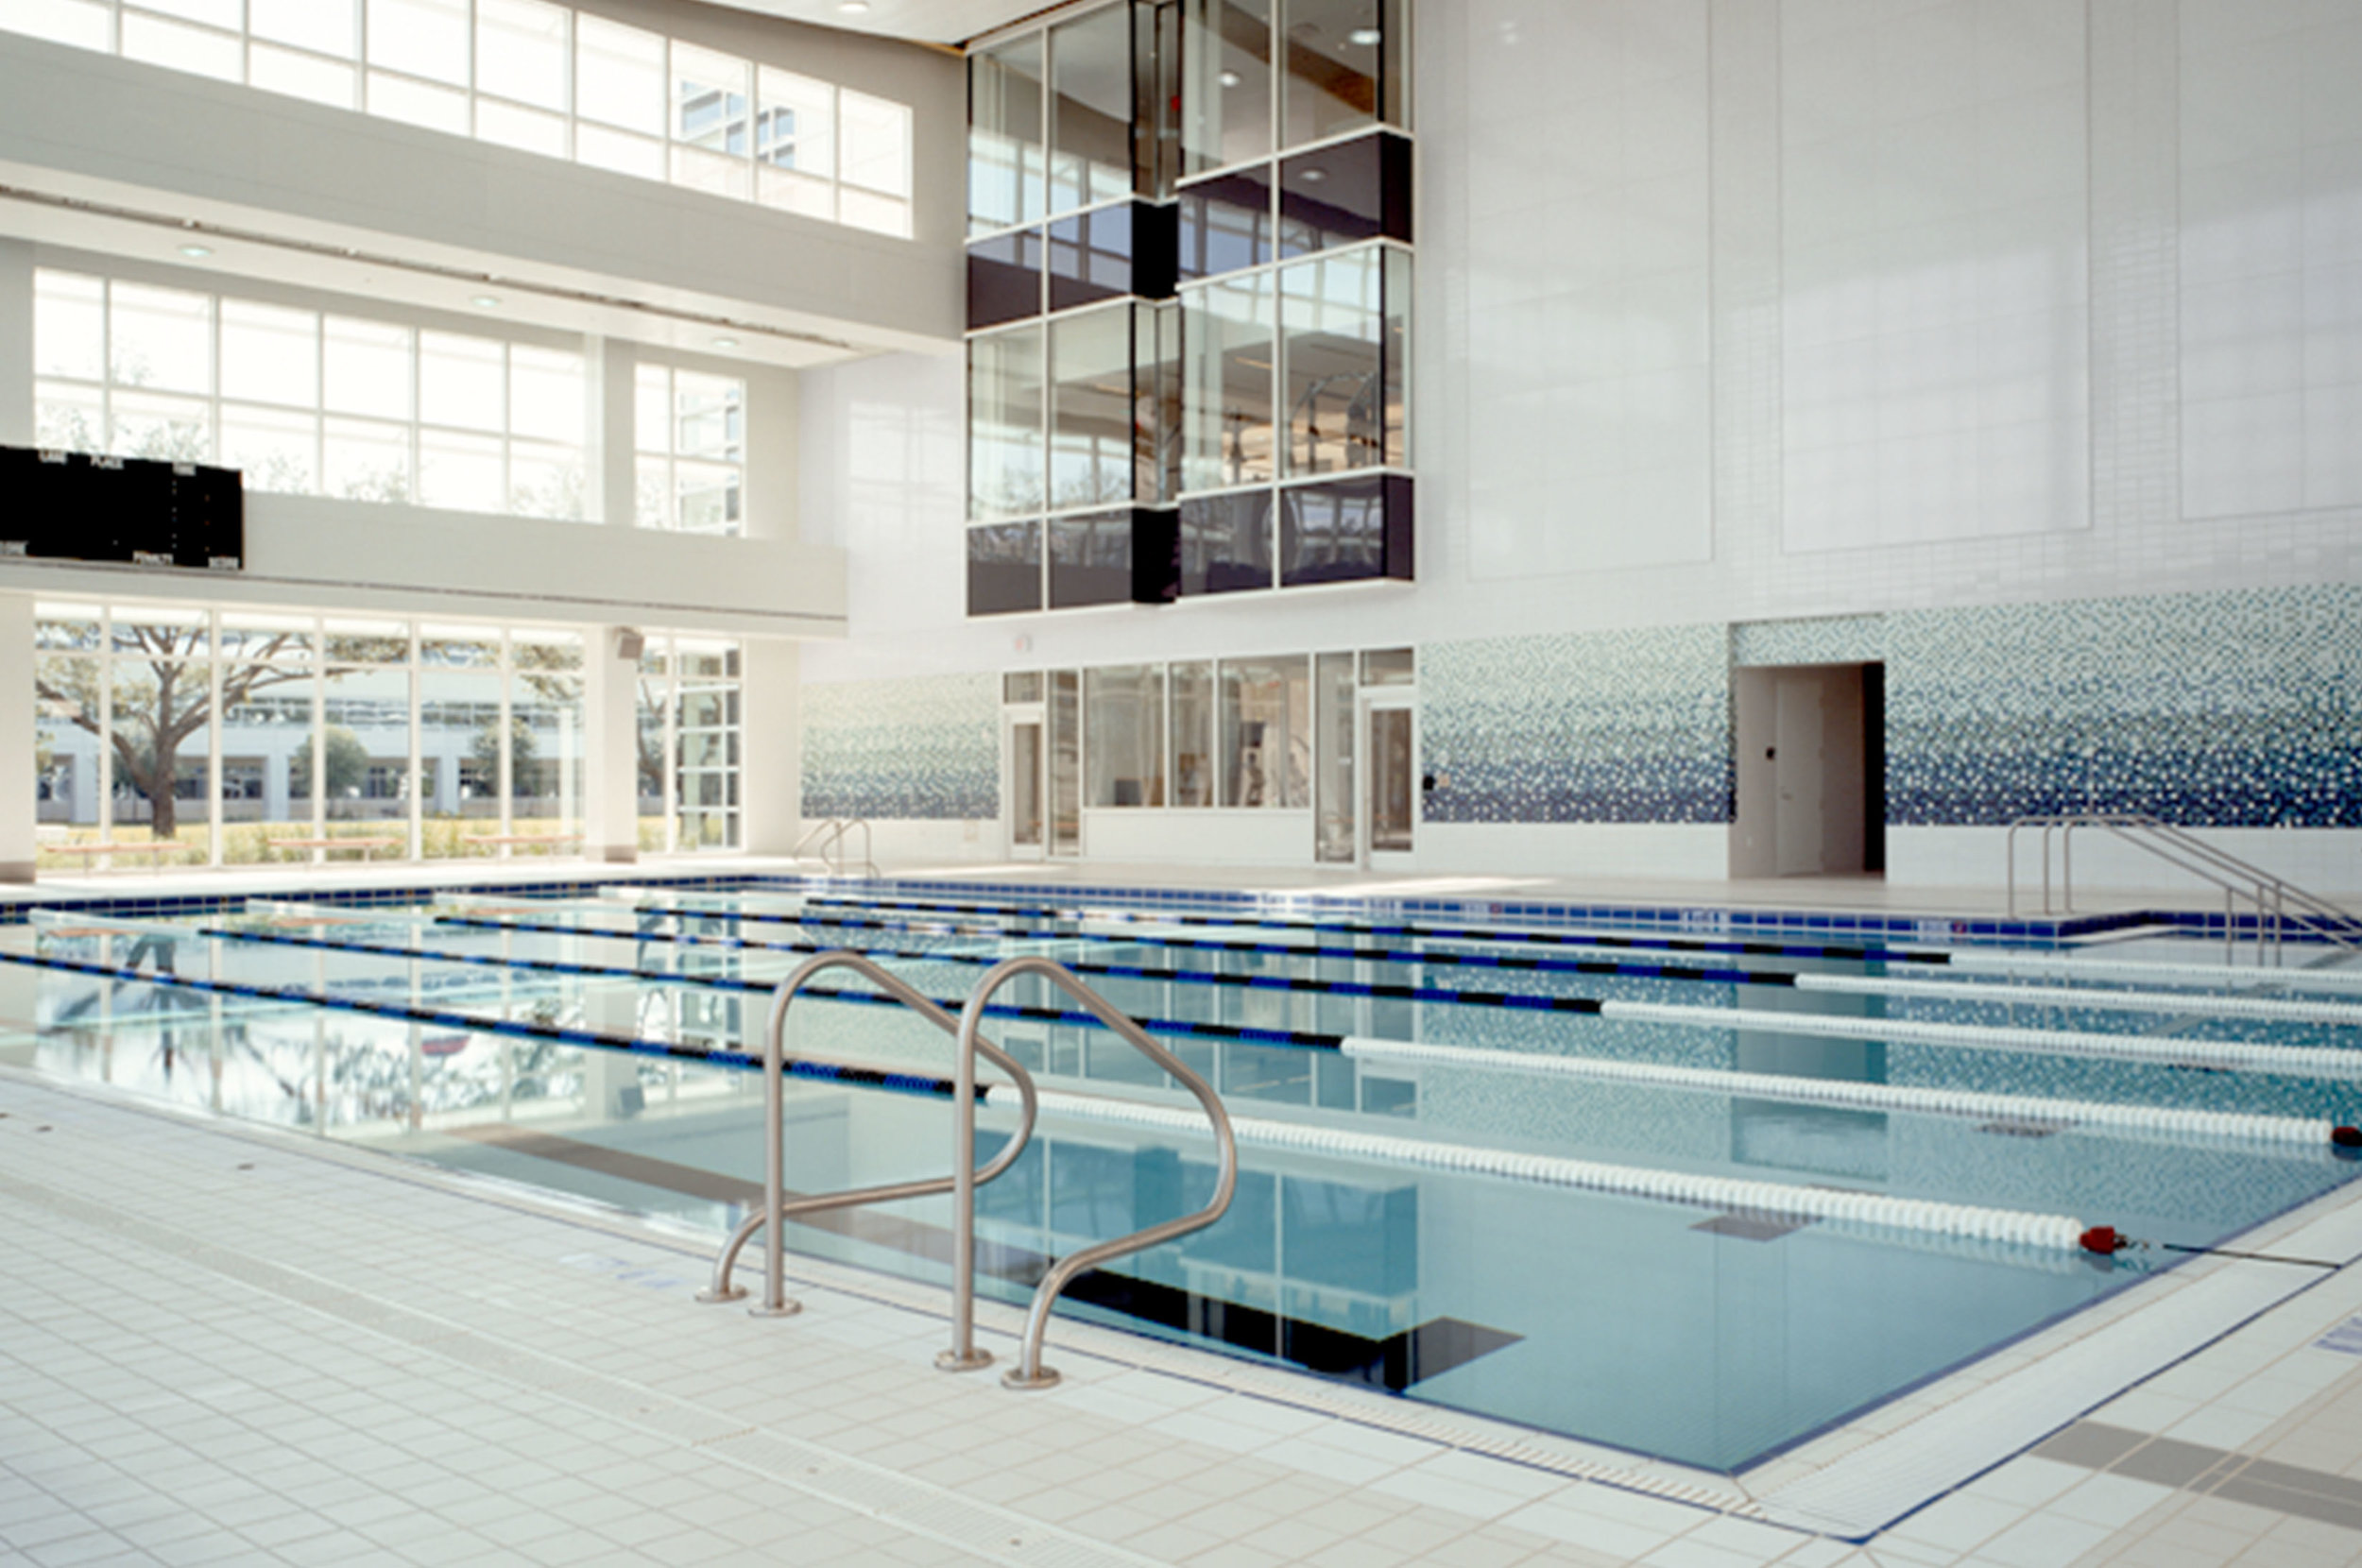 template for our work_0006_aquatic_center.jpg